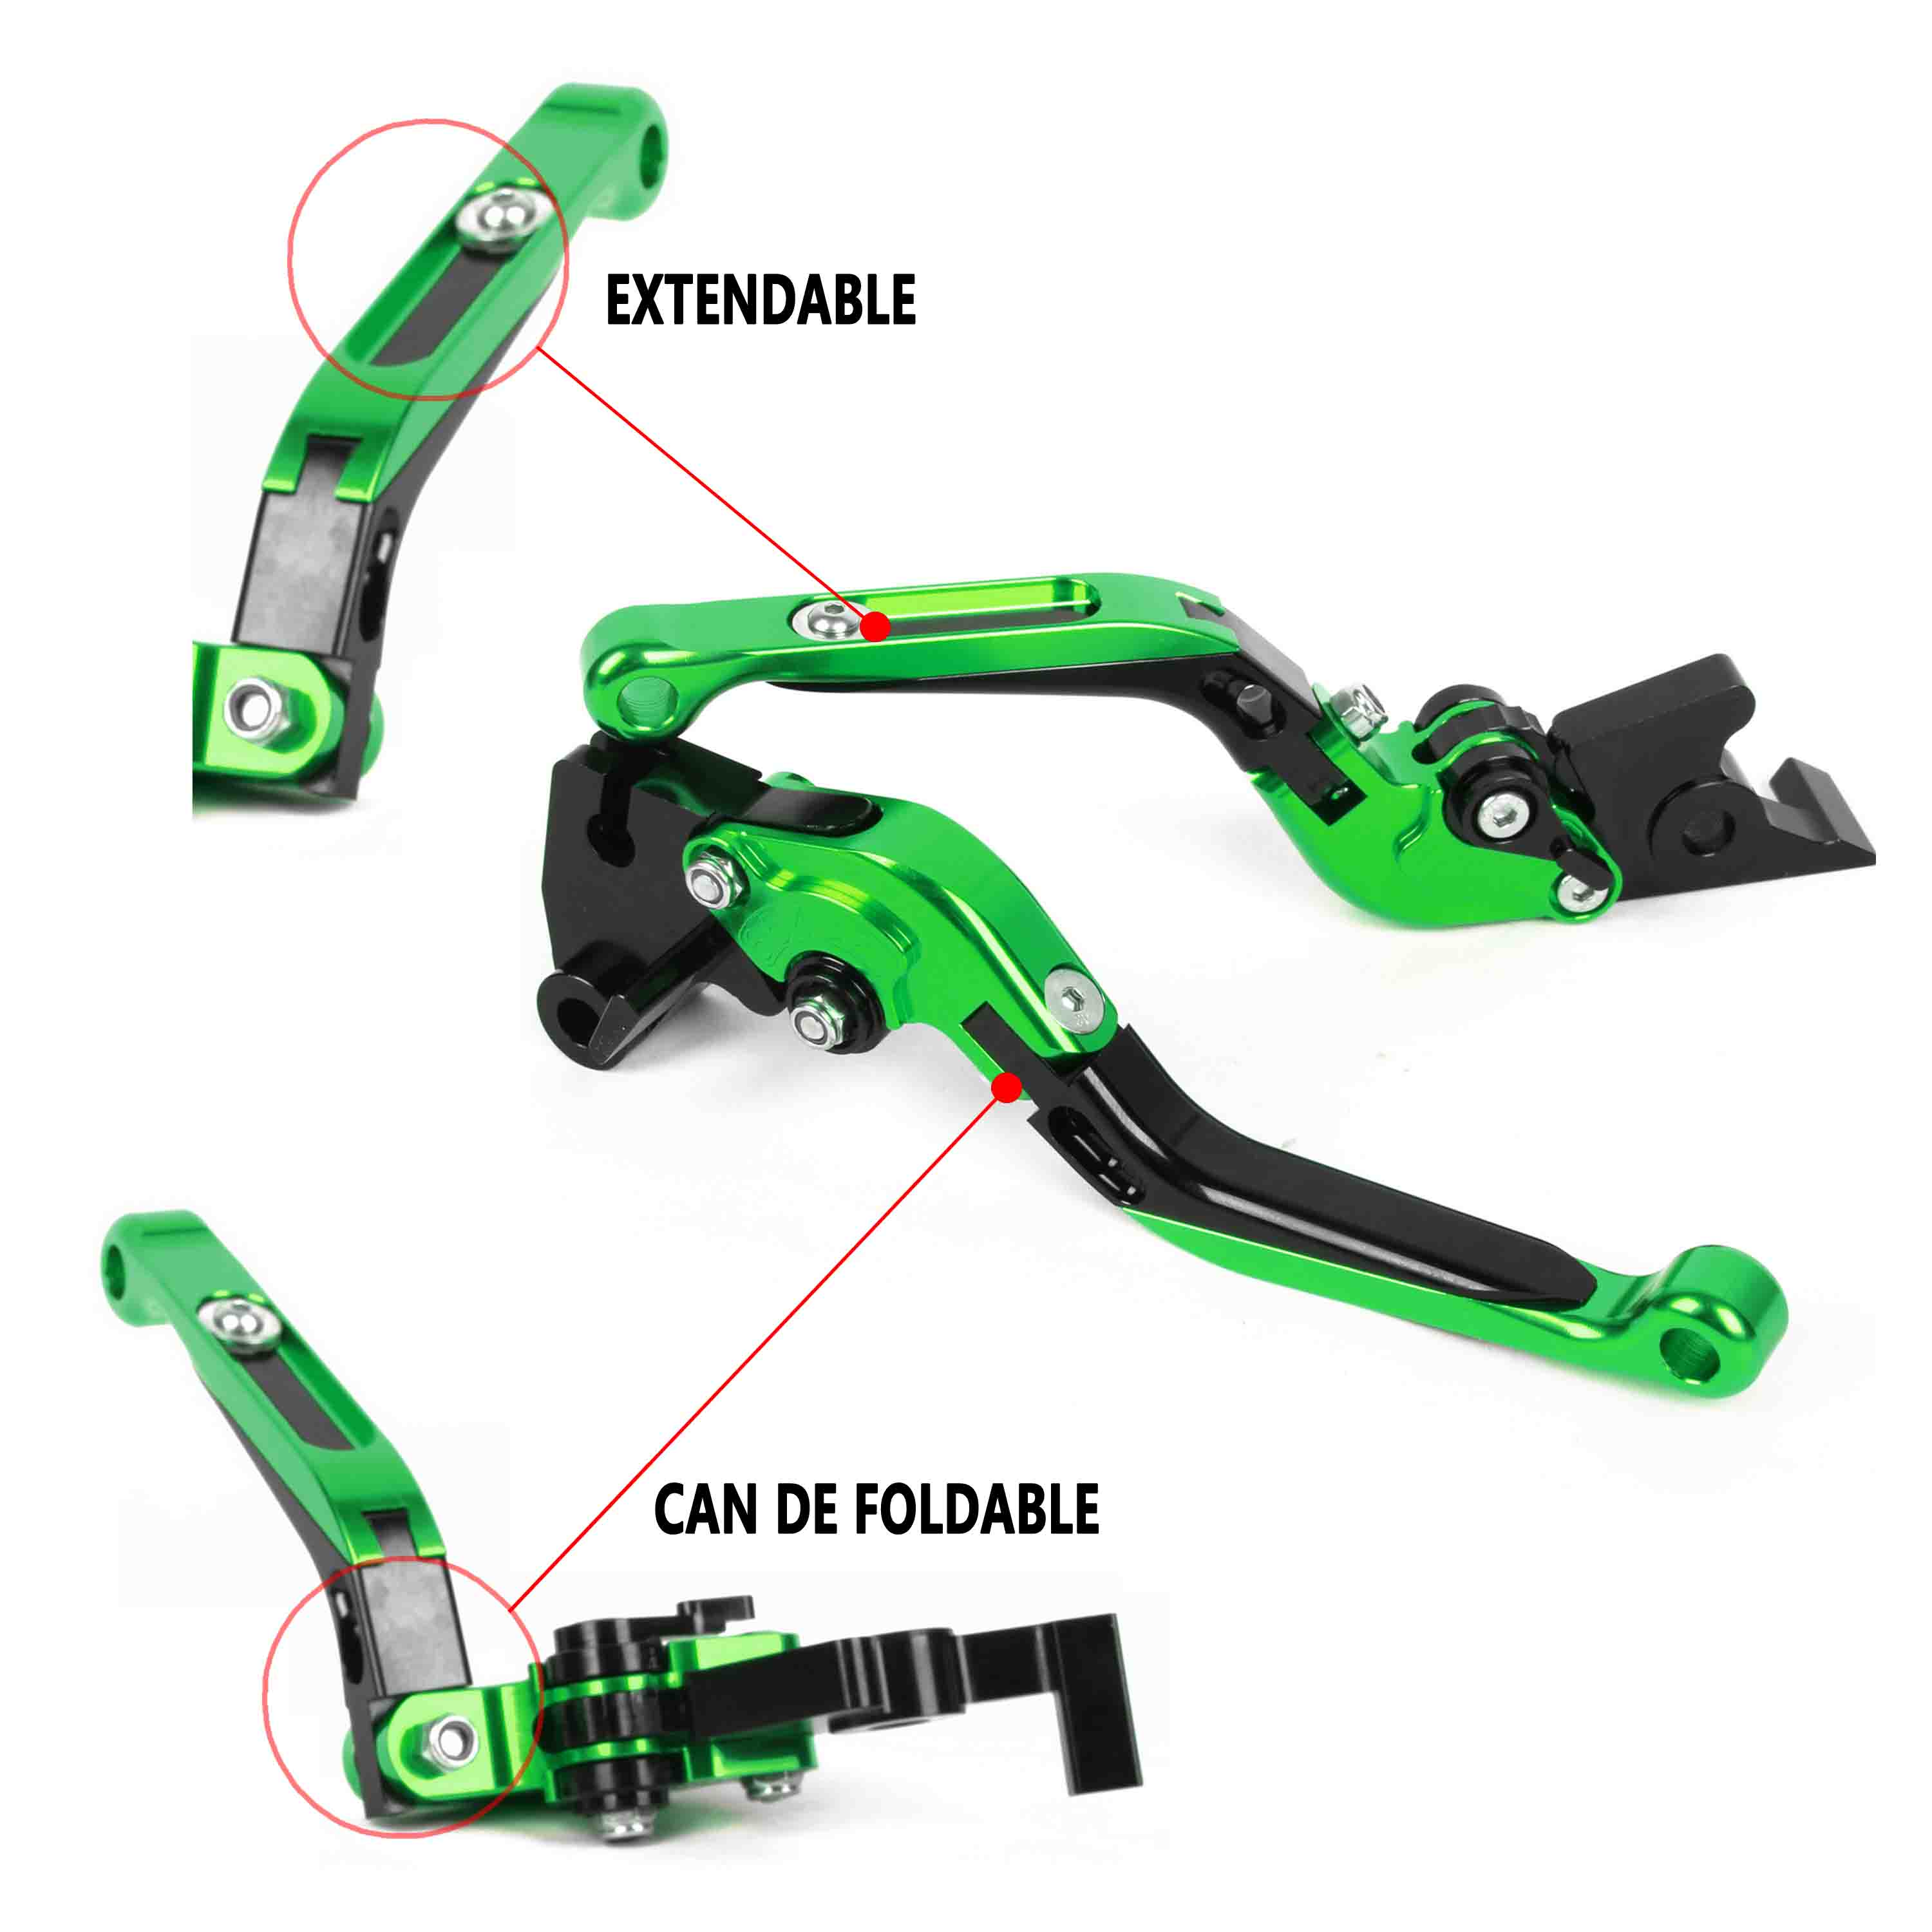 ФОТО For Kawasaki ZXR400L 1991-2003 Foldable Extendable 90 Degrees Brake Clutch Levers Aluminum CNC High-quality Folding&Extending